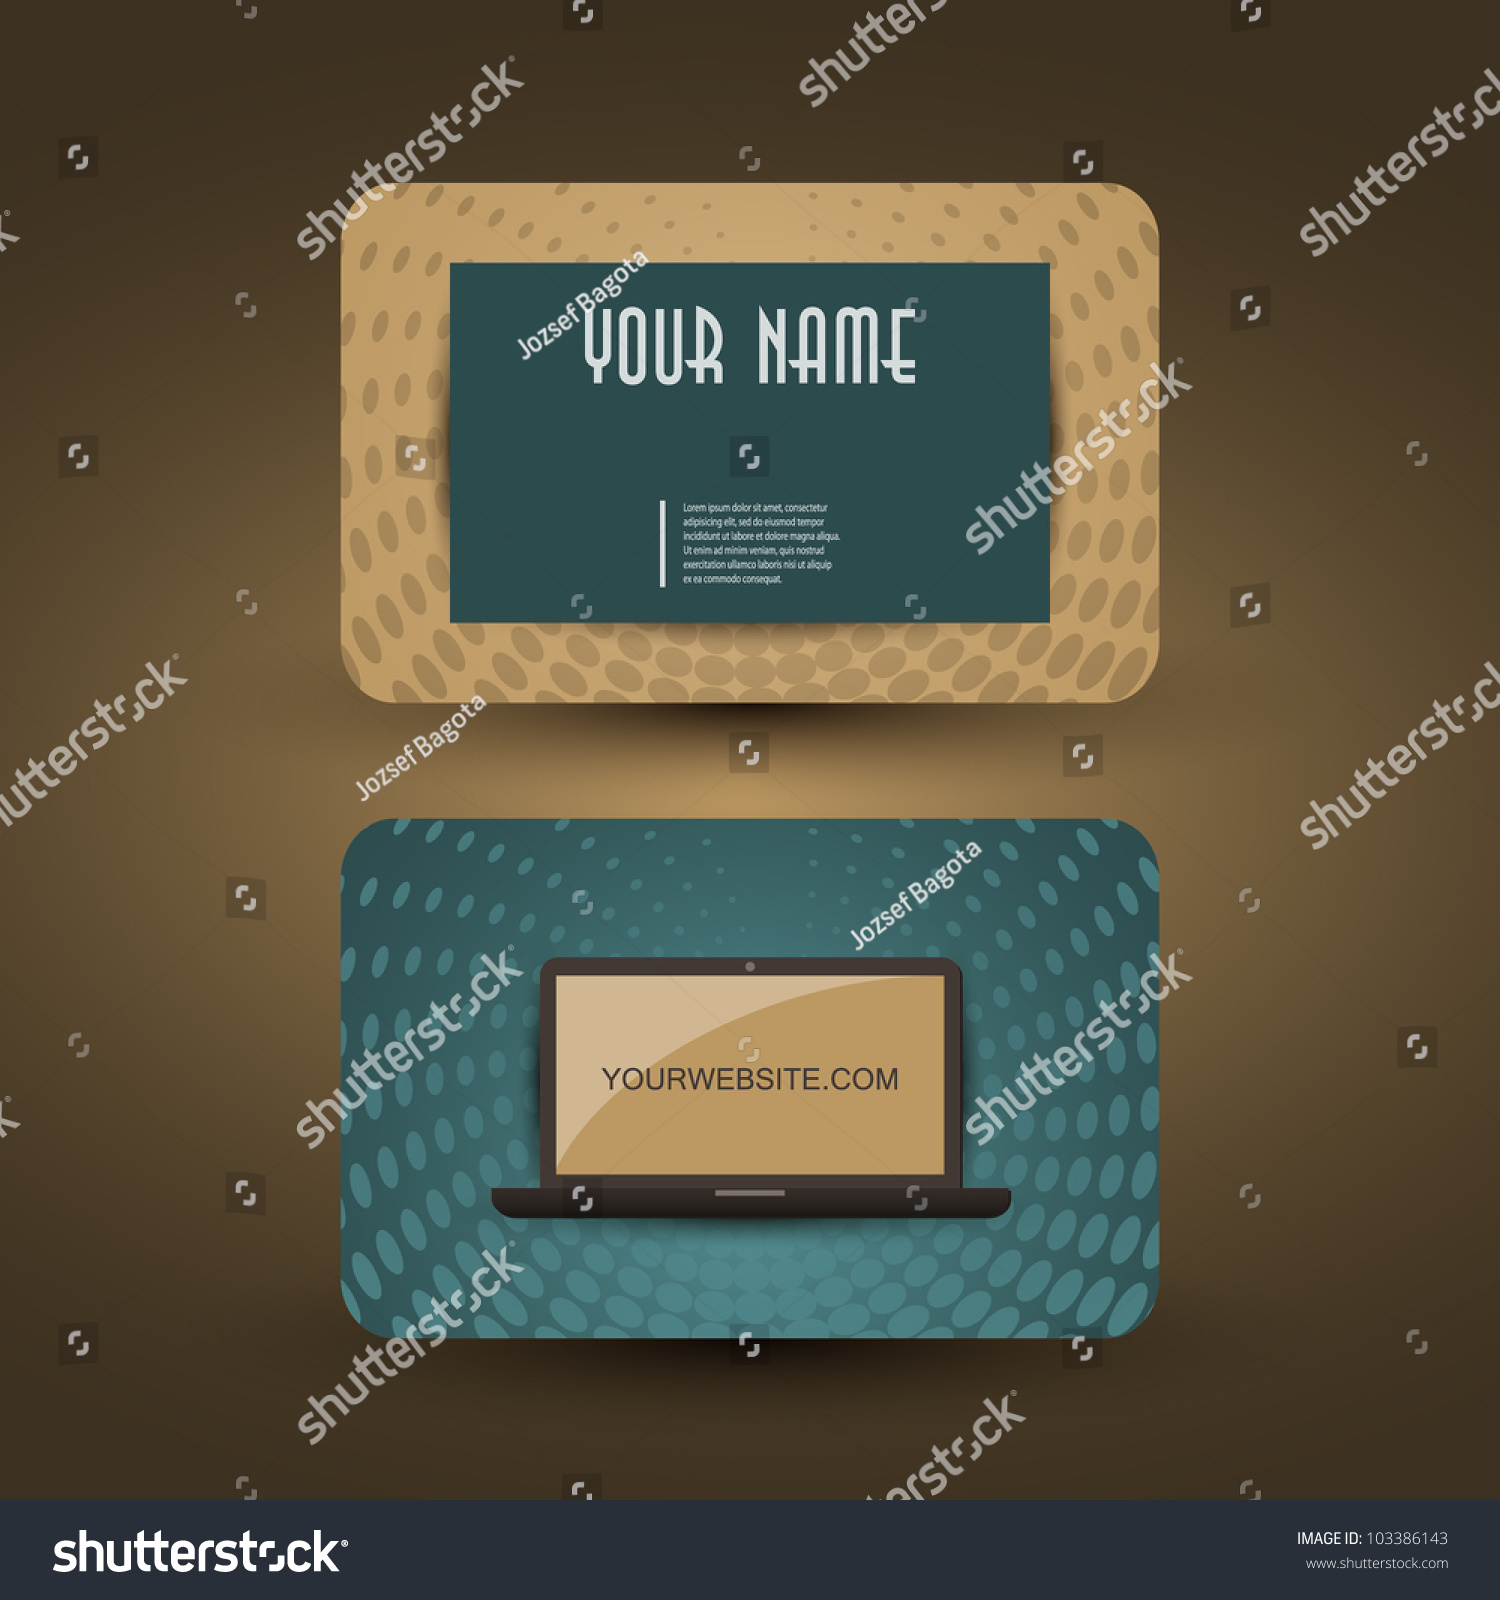 Retro business card template stock vector 103386143 shutterstock retro business card template friedricerecipe Images